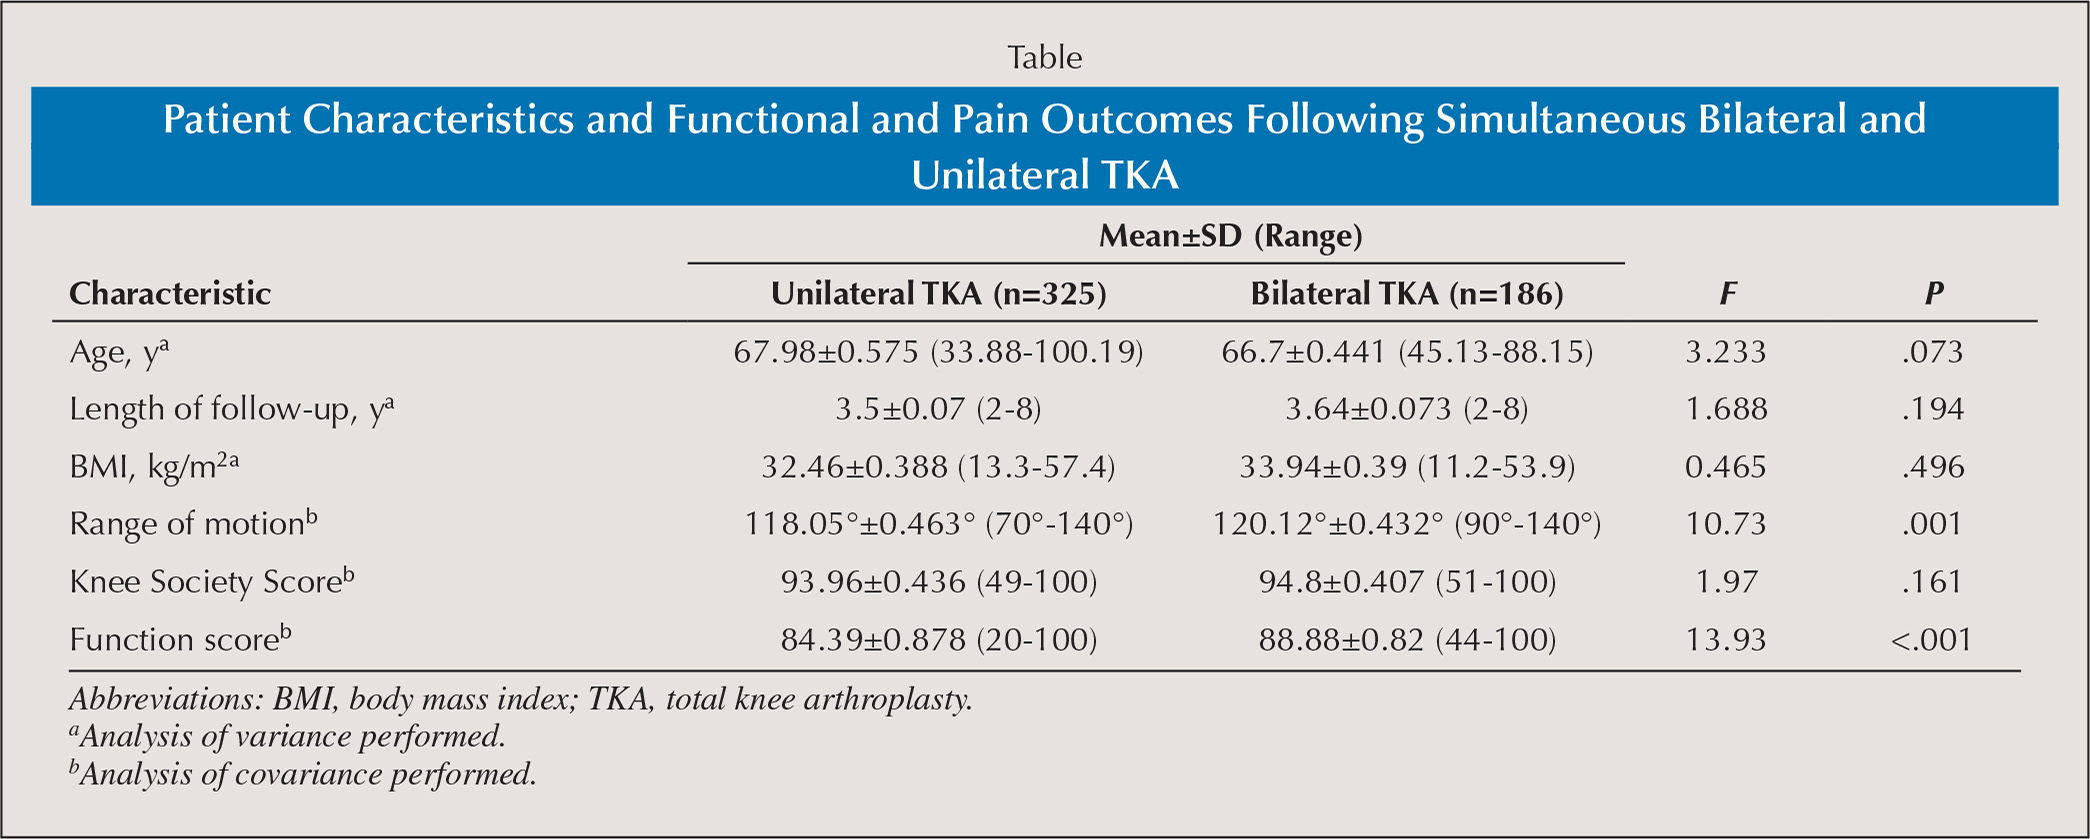 Patient Characteristics and Functional and Pain Outcomes Following Simultaneous Bilateral and Unilateral TKA